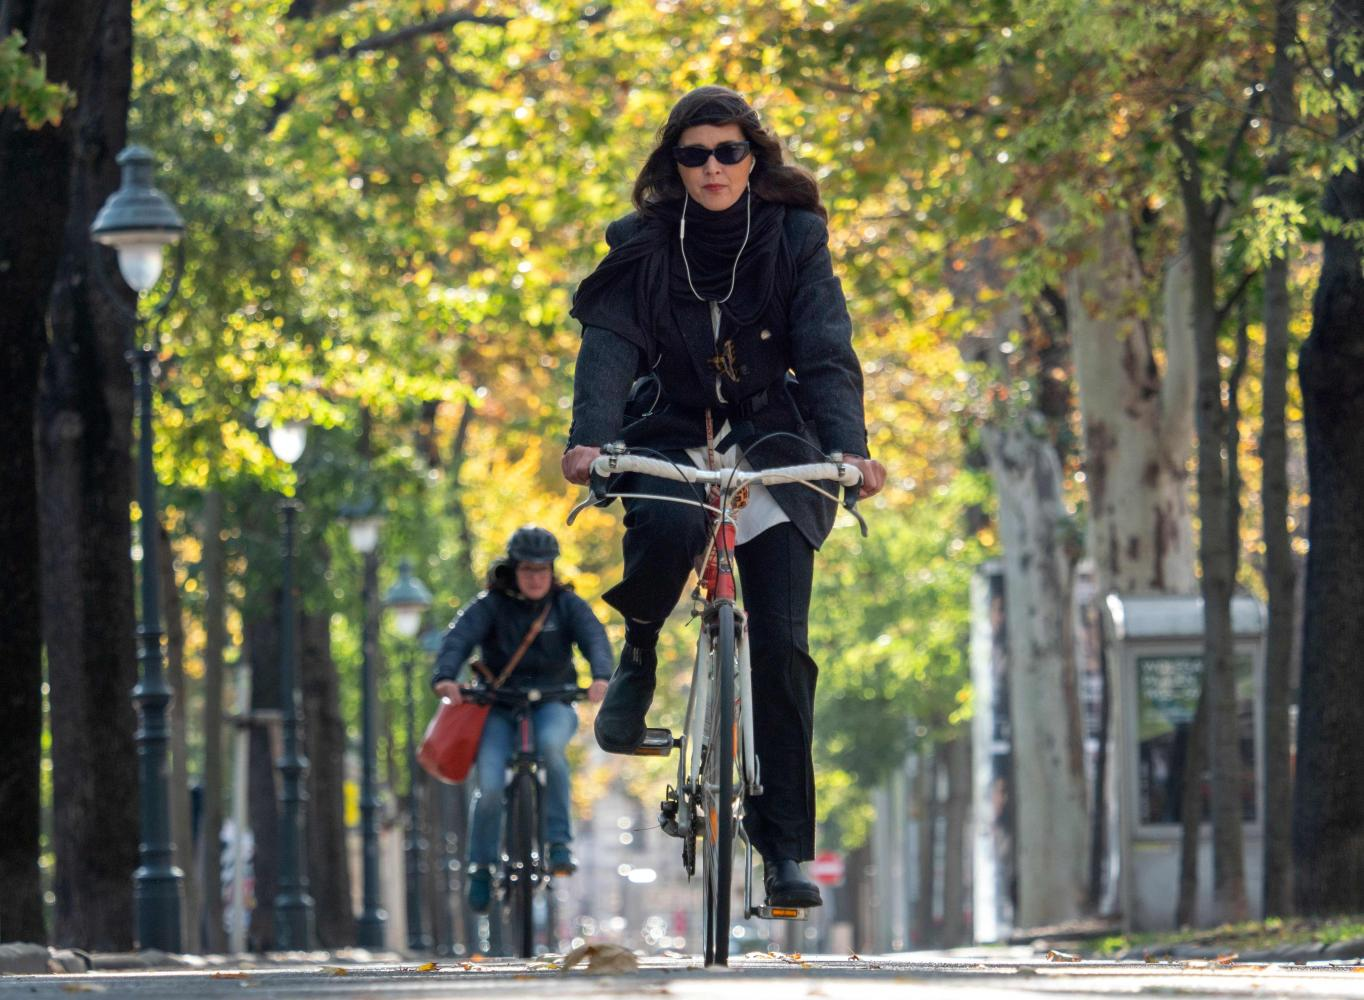 Thinking city: The Austrian government has made a pledge to produce as much energy from renewable resources as it consumes by 2030. It has used rafts of measures to become more environmental-friendly such as creating better transport, using smart energy innovation and promoting environmentally-friendly modes of transport like bicycles.